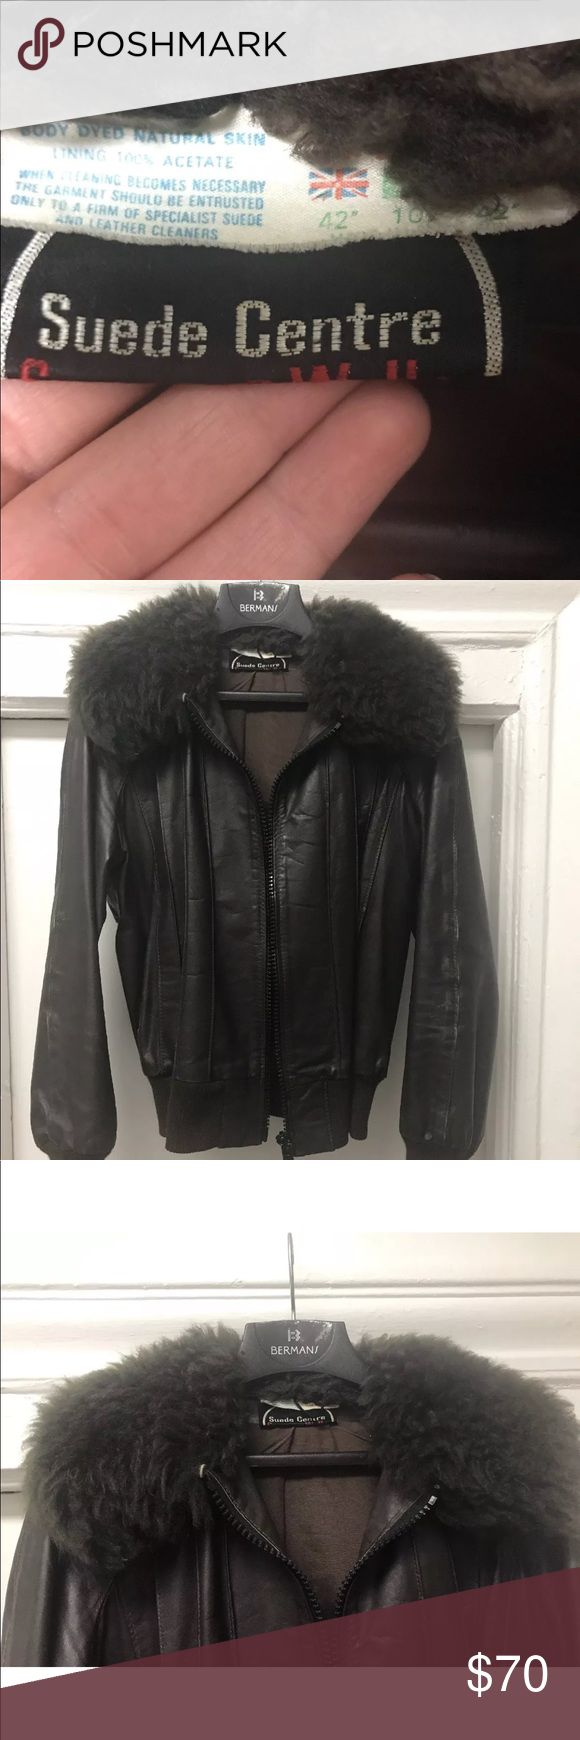 Vintage Leather Bomber Jacket with shearling Vintage Swears & Wells leather jacket  UK leather makers   . Classic bomber style jacket with thick shearling  . Chocolate brown leather & fur  . Perfectly broken in  . No odor  . Shearling is very soft & supple   | Fit |  Size 42  Fits about a size 8/10 women's or a size Small men's Vintage Jackets & Coats